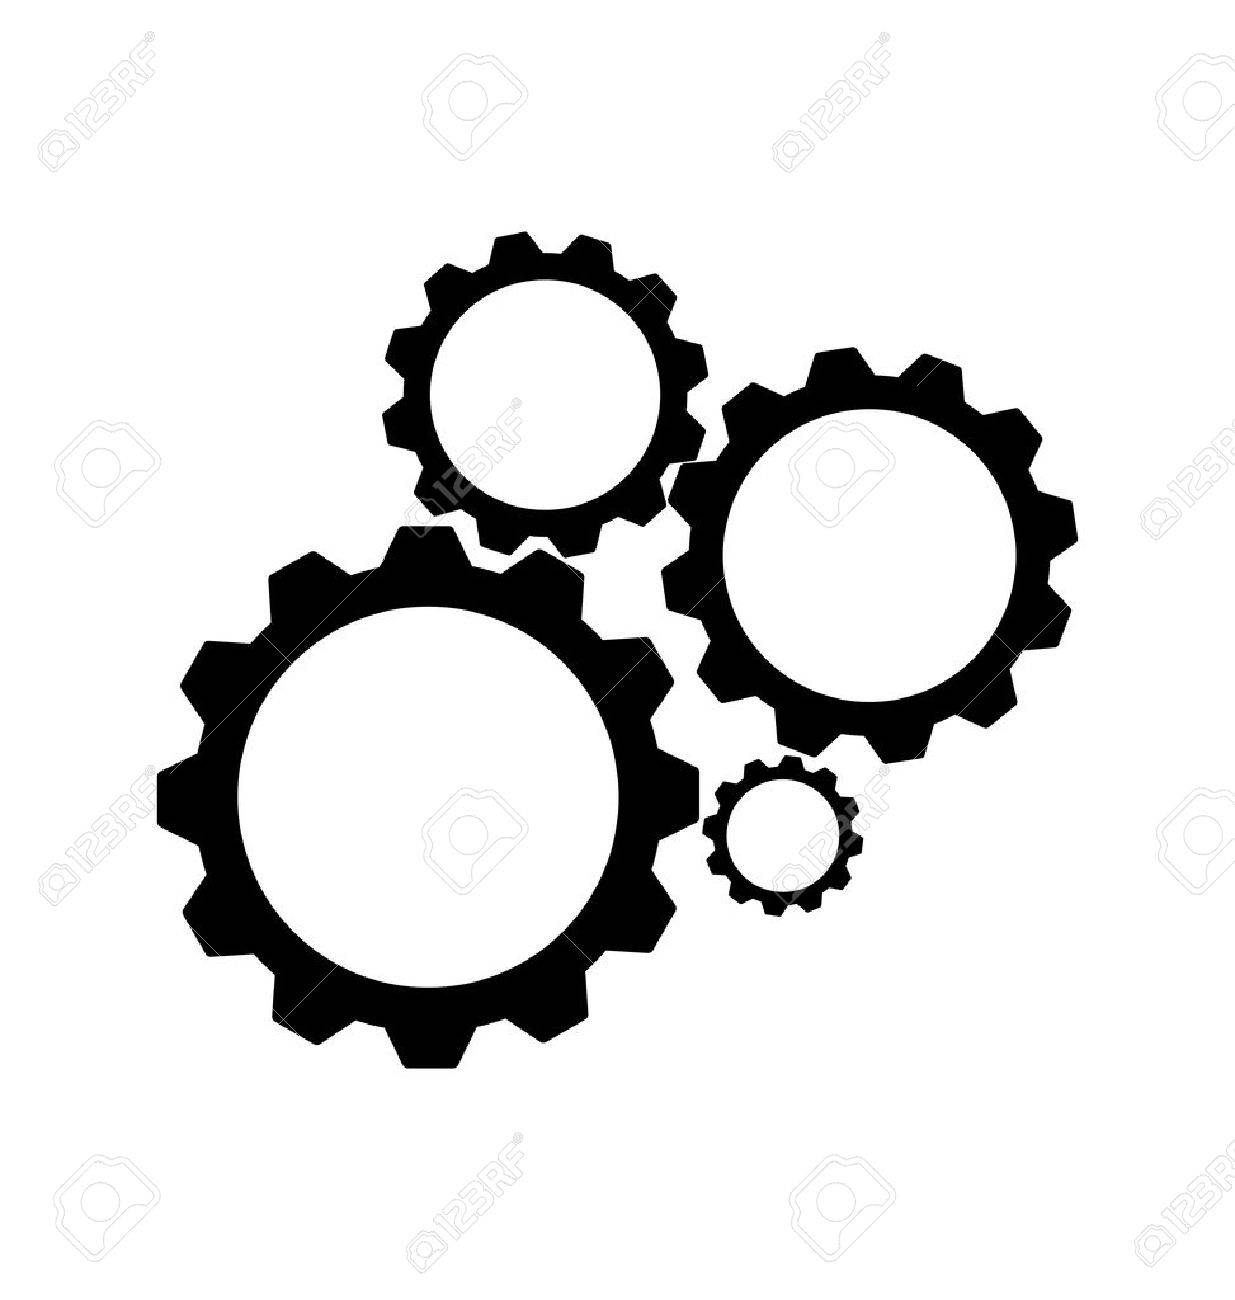 black cogs, gears on white background.